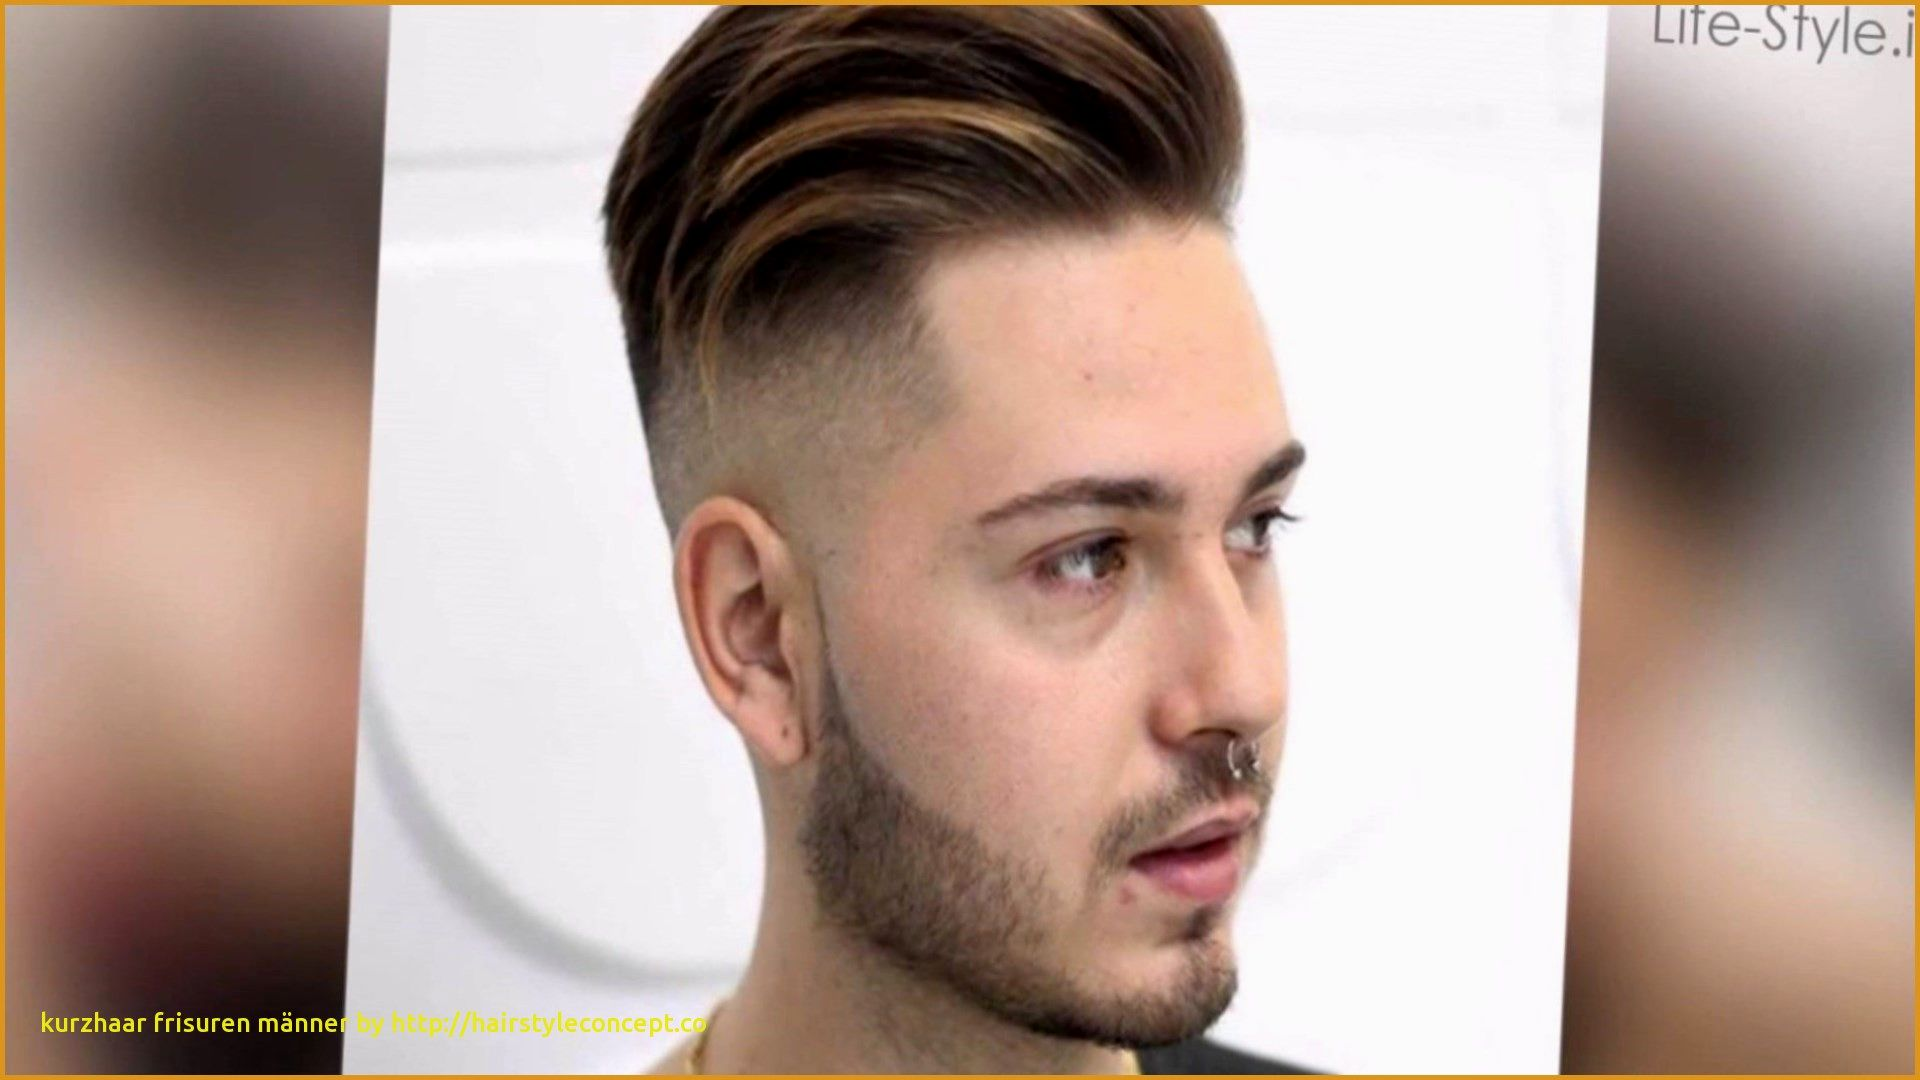 Best of shorthair men's decoration-Beautiful Shorthair Men's Wall